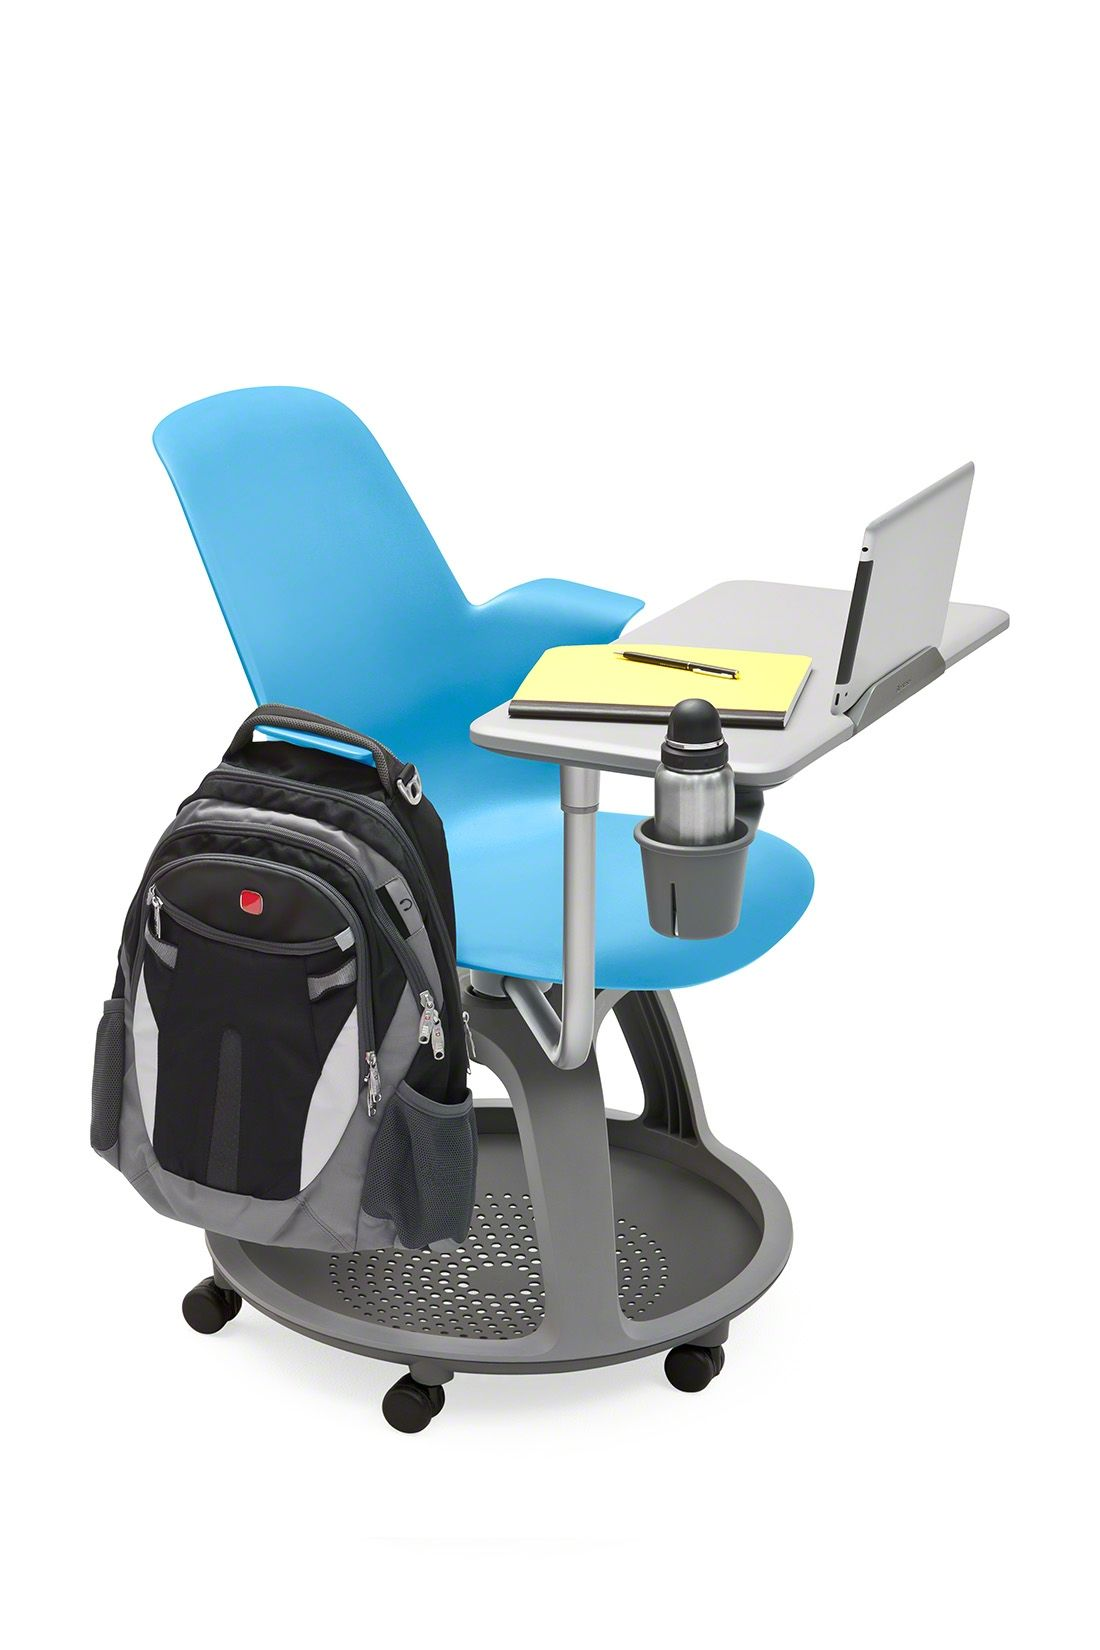 steelcase classroom chairs desk chair pillow has just recently introduced a tablet holder for their popular node seating line is great of higher ed and collaborative